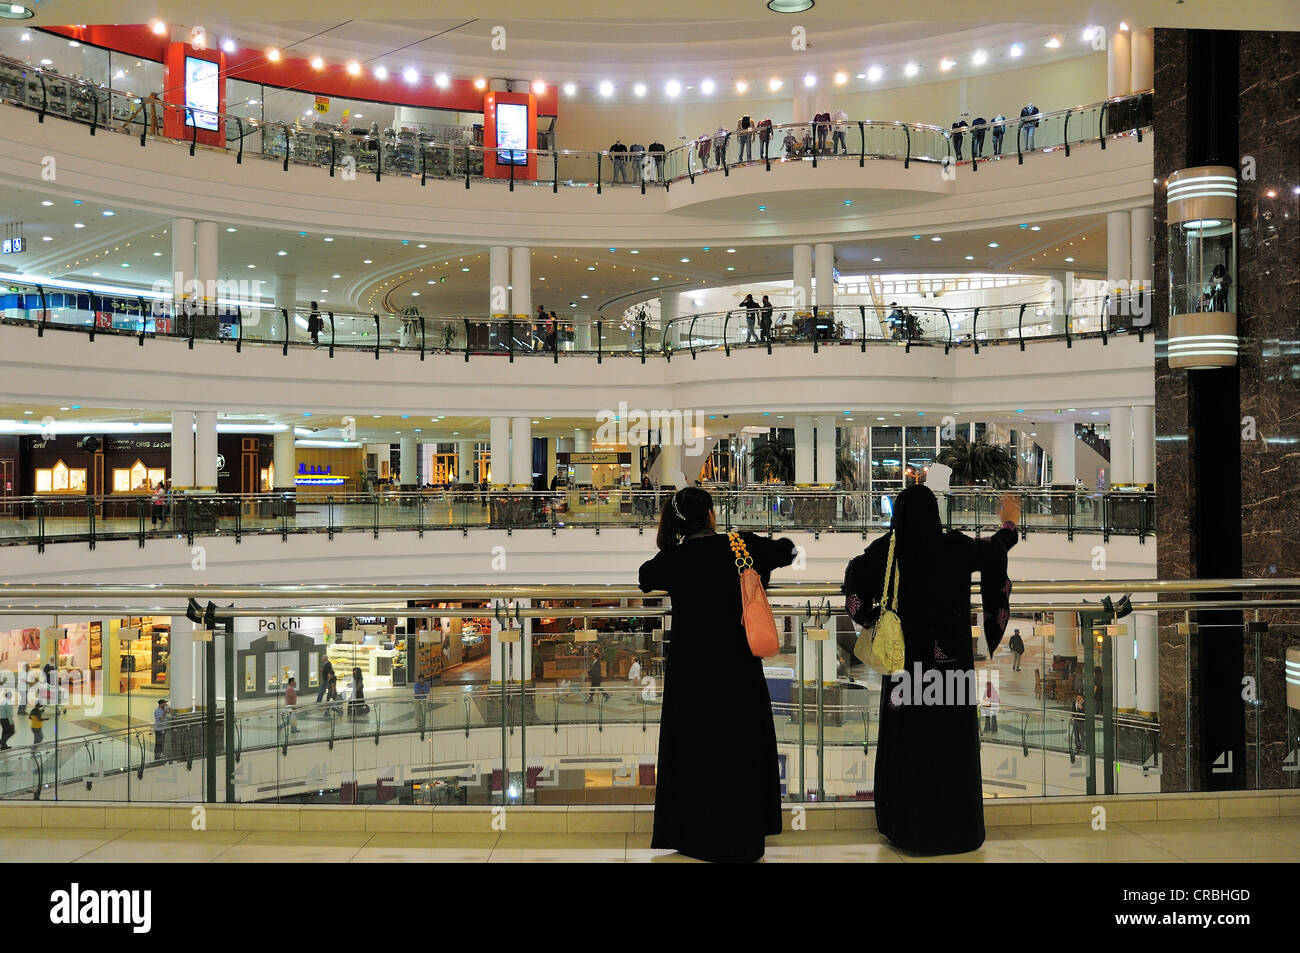 Two women at the City Centre Mall, Doha, Qatar - Stock Image